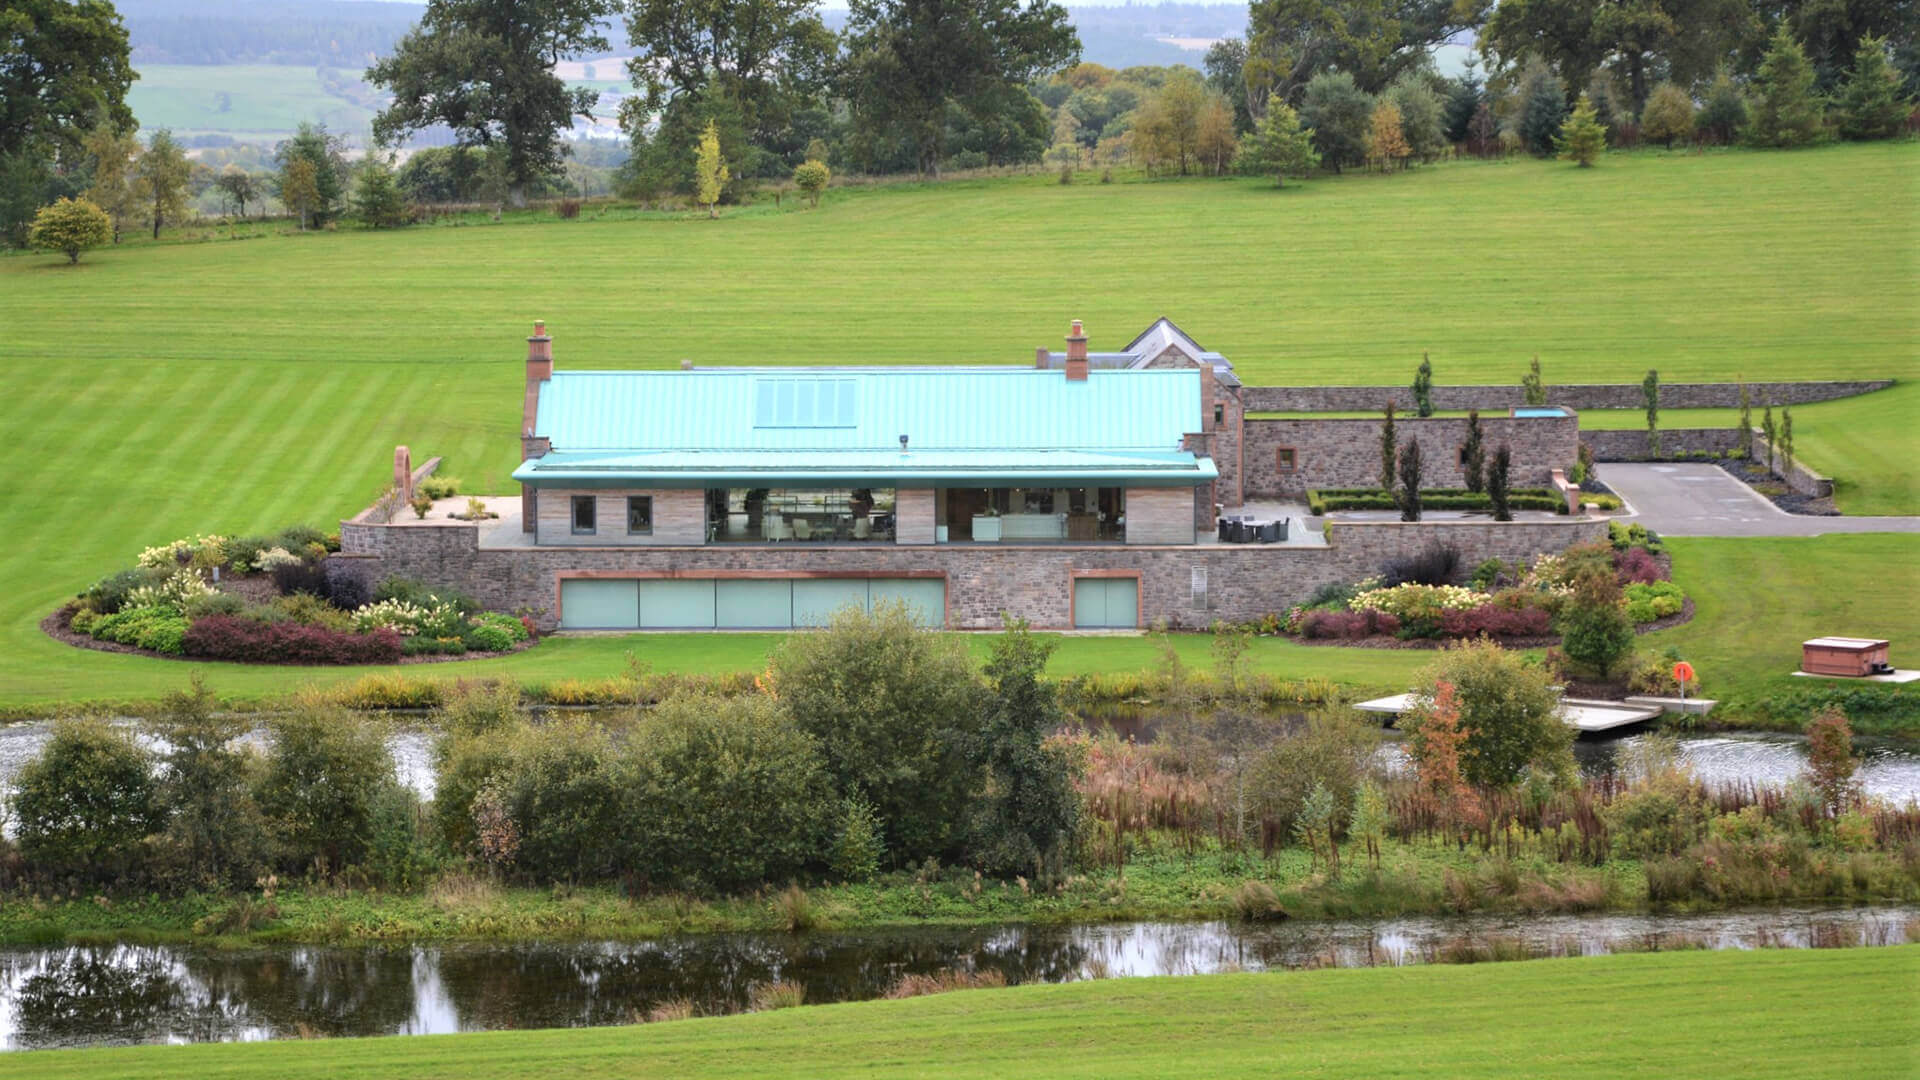 New Country House and Estate view from across river